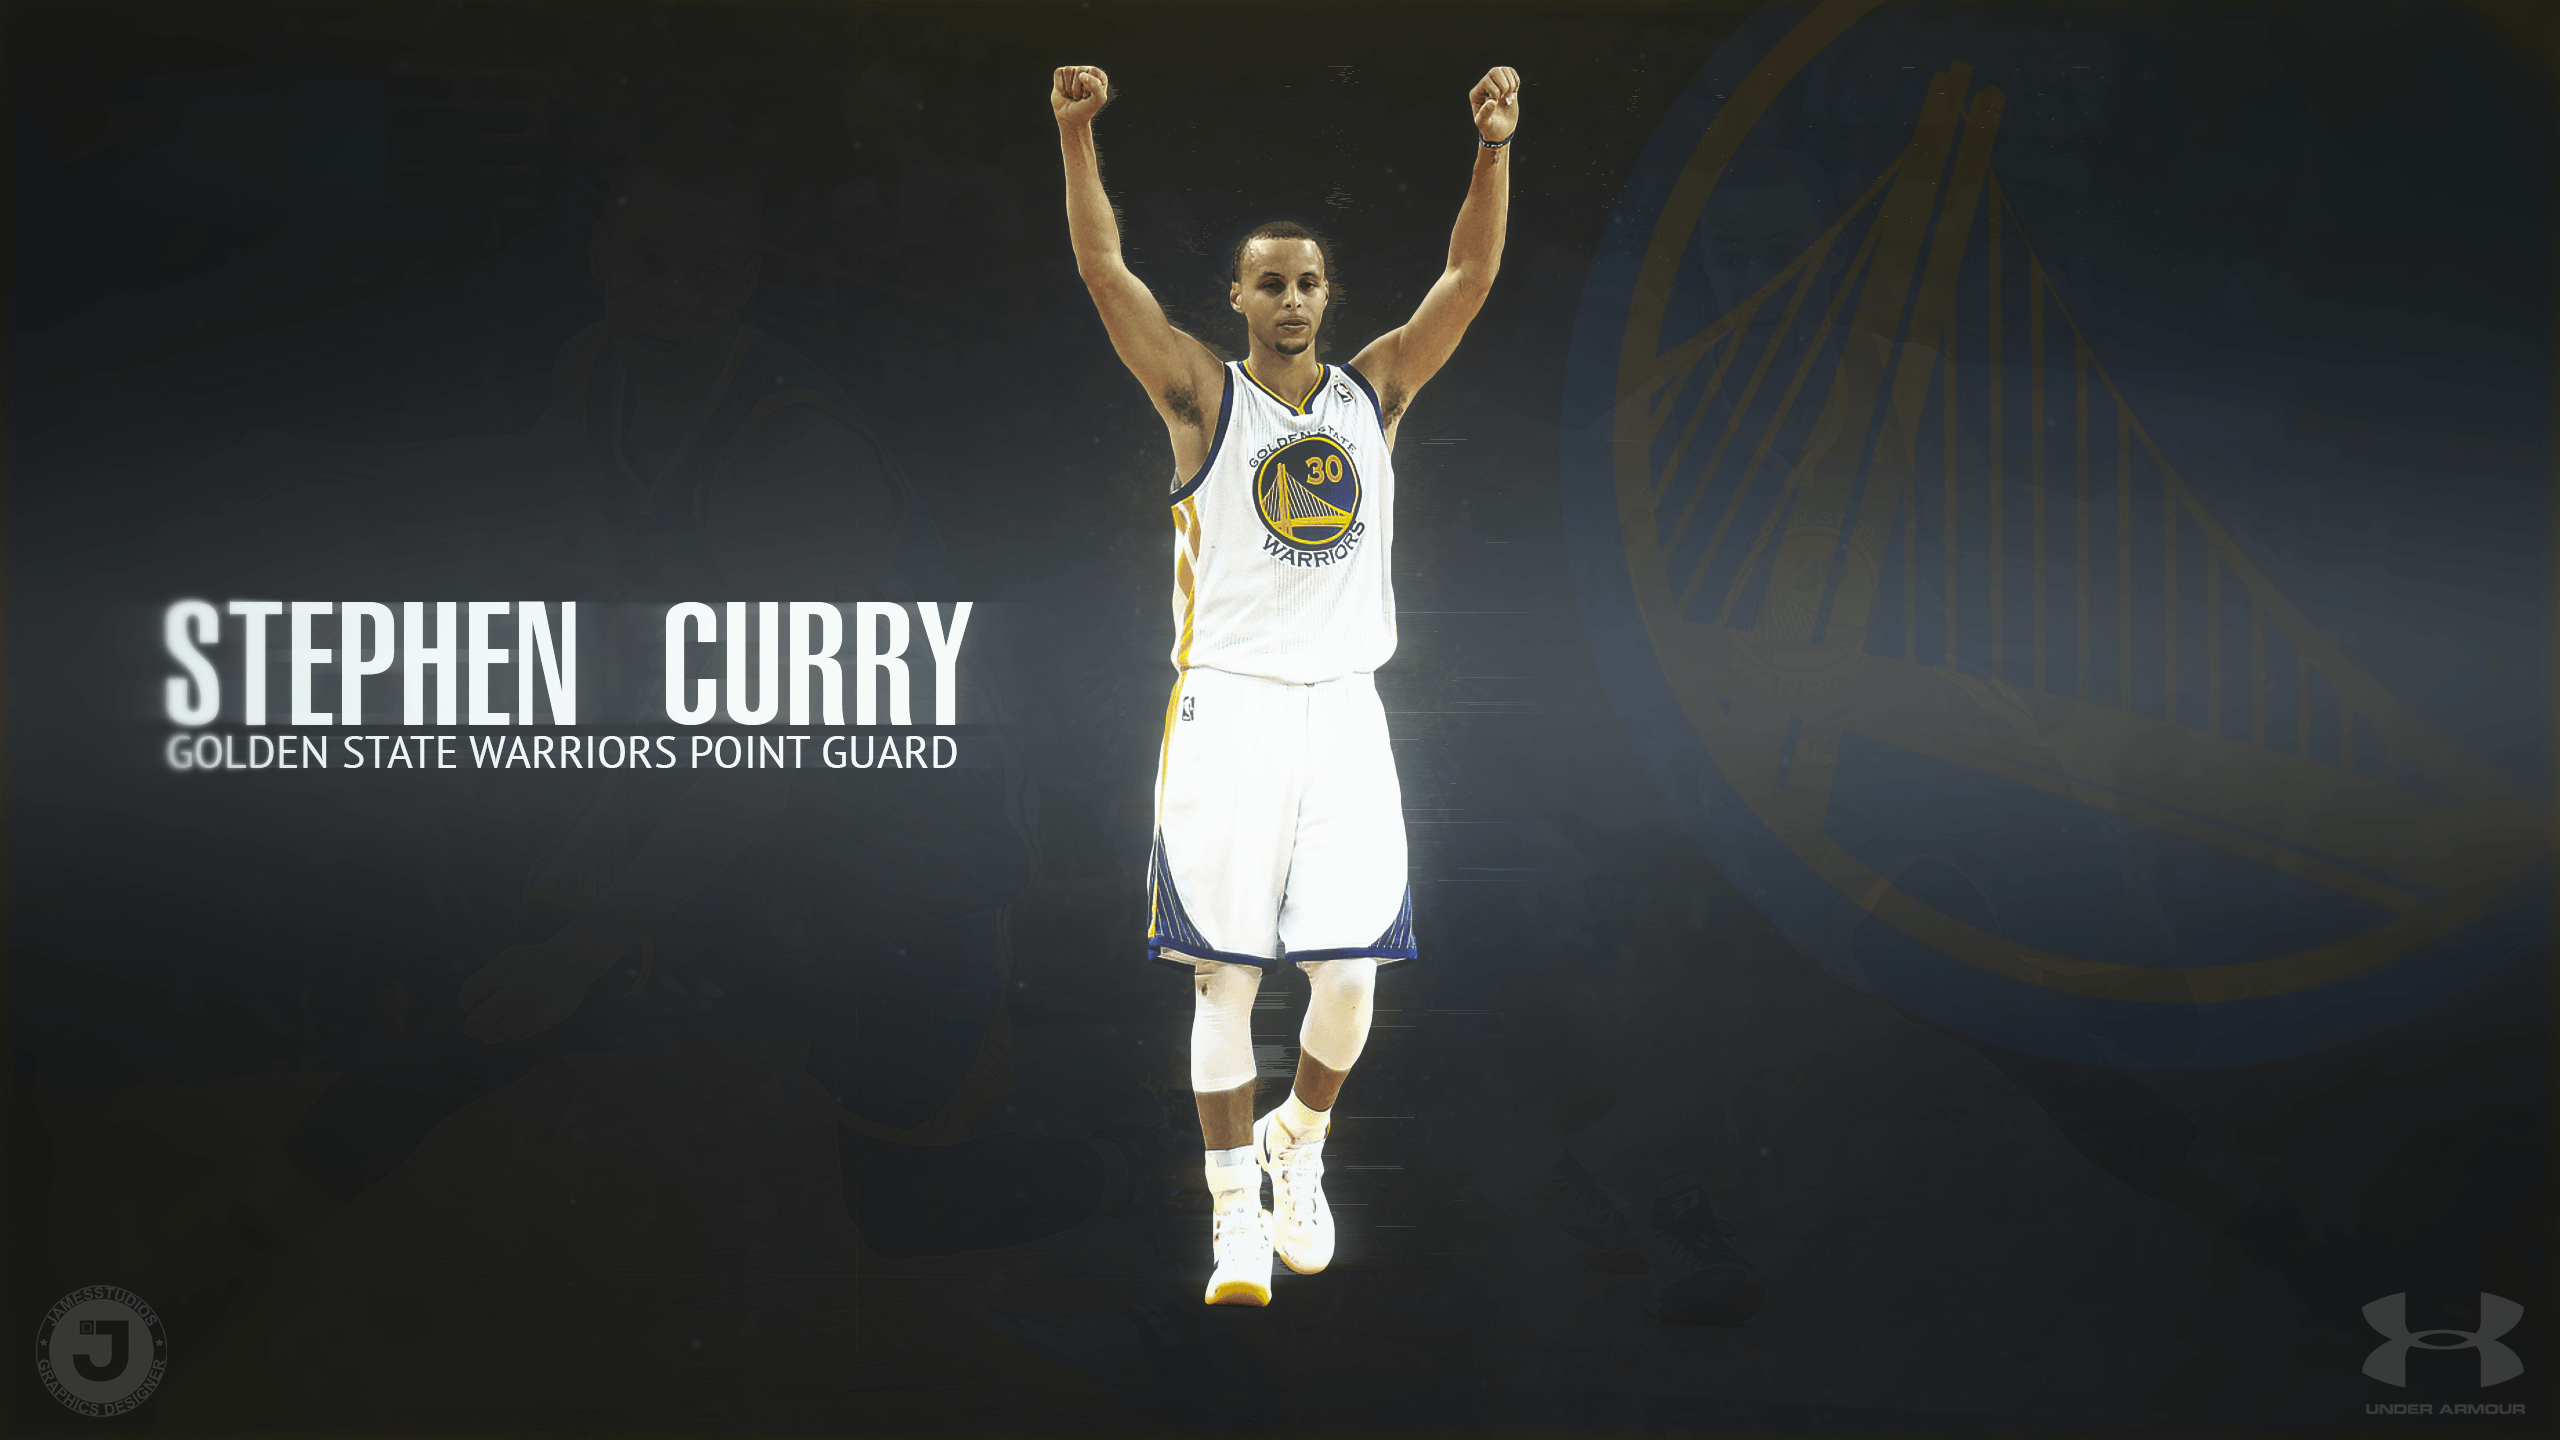 Steph Curry Lights Out Wallpapers On Wallpaperdog